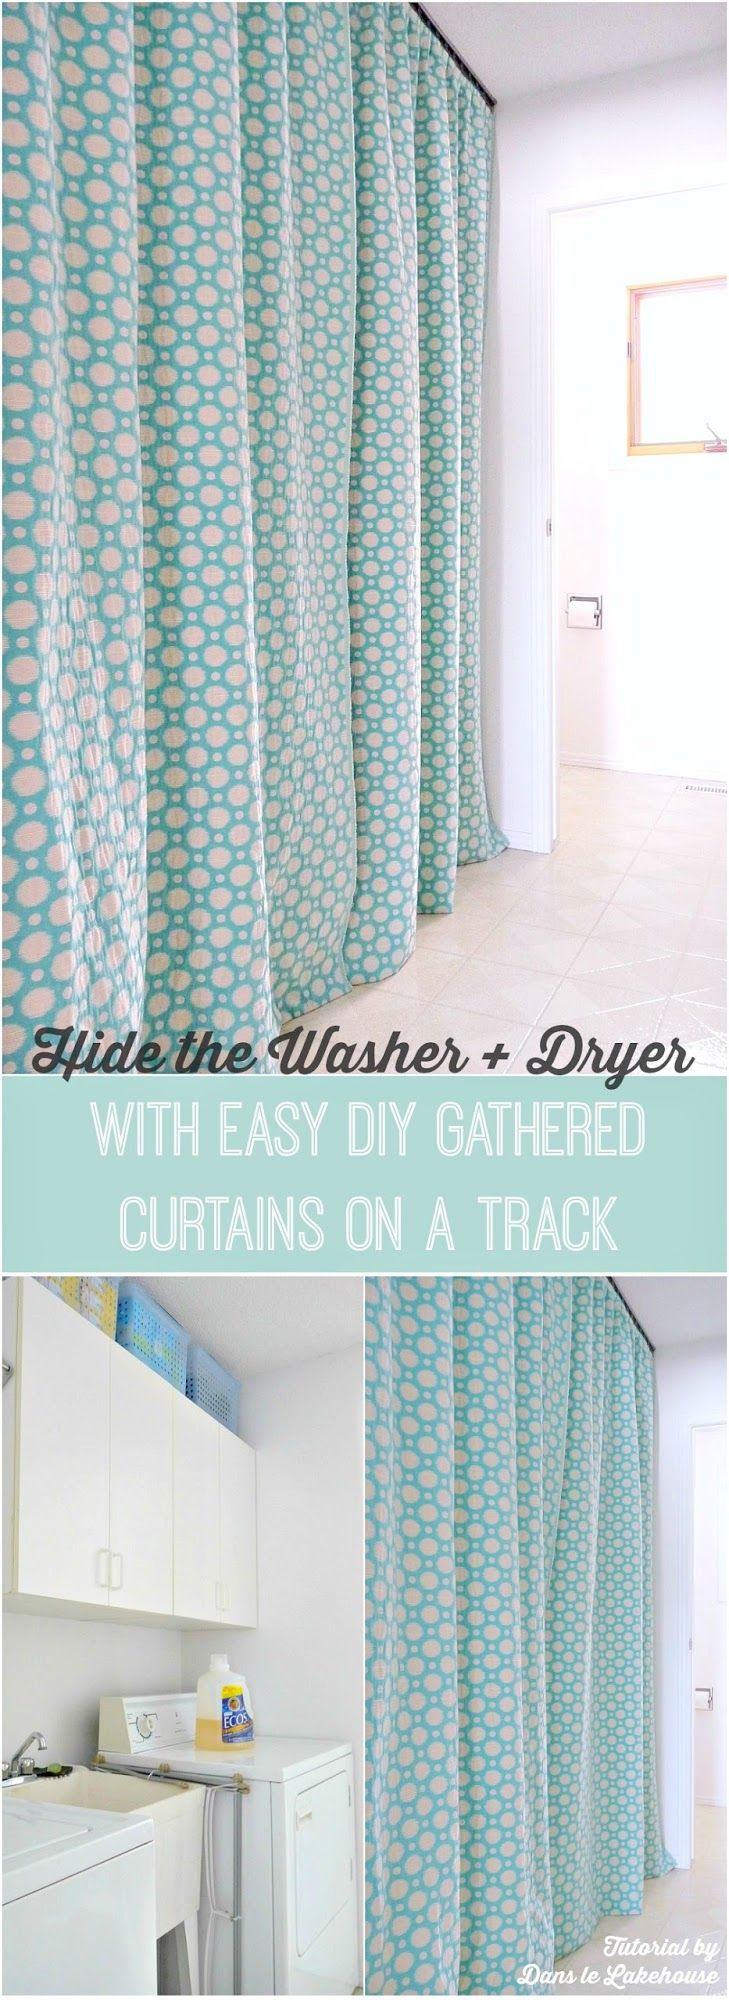 Hide a Washer and Dryer with Easy DIY Gathered Laundry Room Curtains on a Track